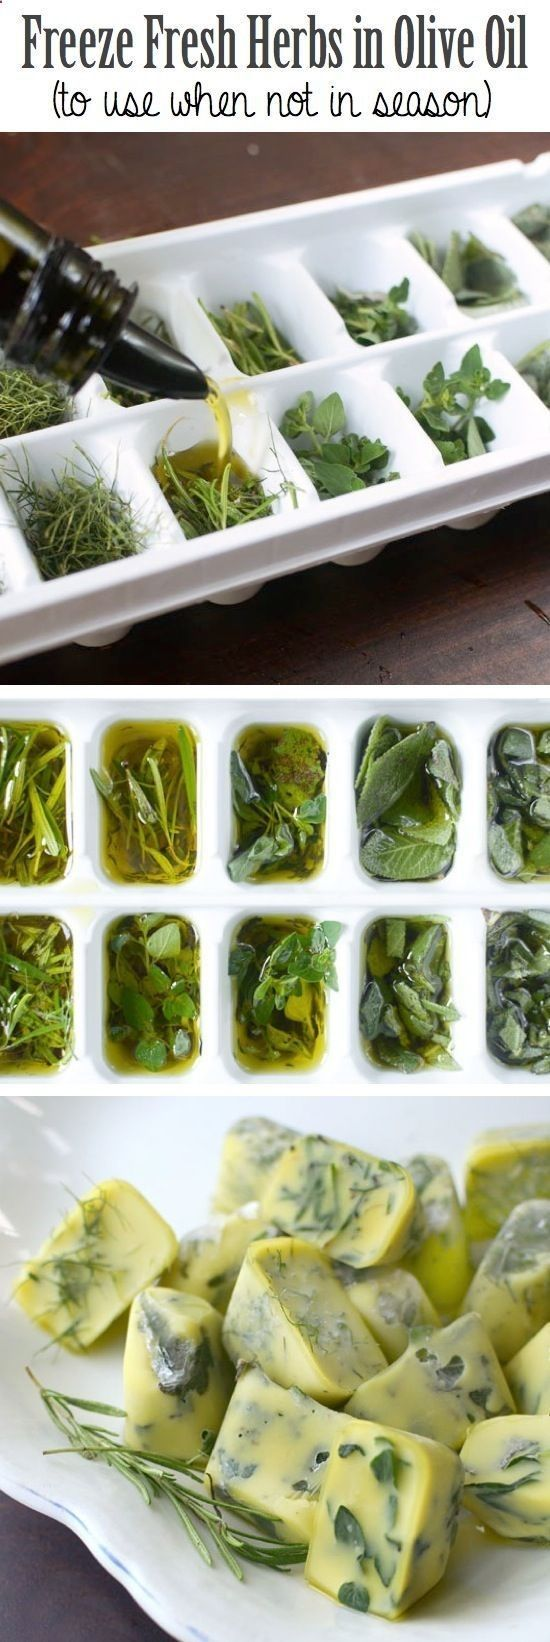 Freeze & preserve fresh herbs in olive oil to use when not in season